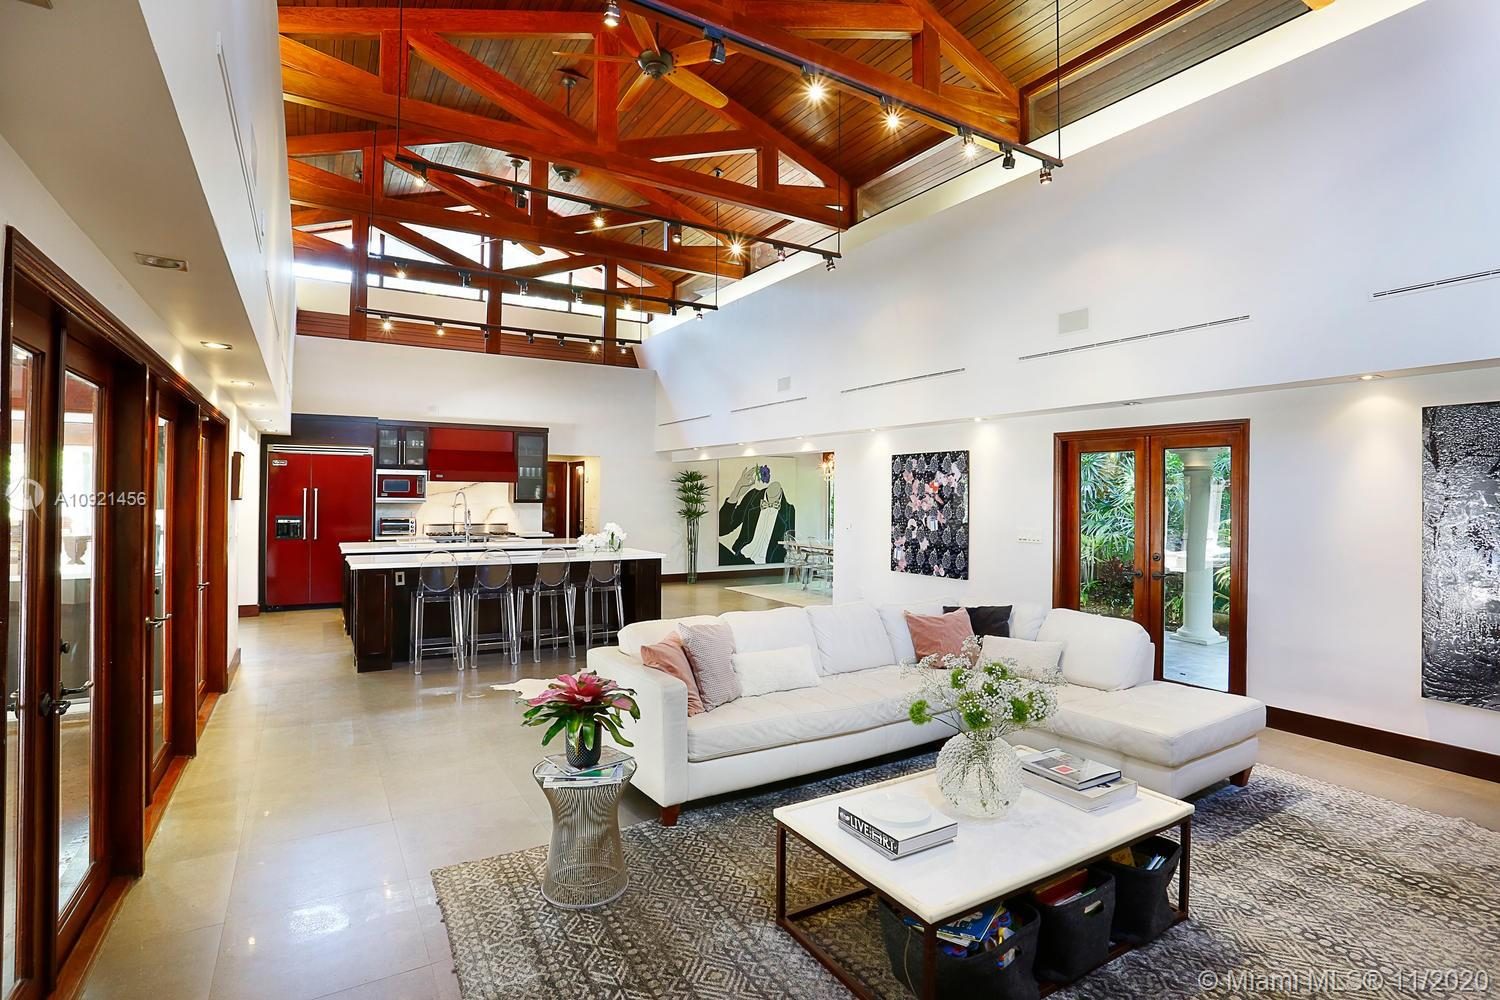 "Ultra-private, walled & gated retreat surrounded by magical tropical gardens set under a lush tree canopy. Architecturally unique design with expansive interior courtyard & deep covered terraces that connect the ""Main Living Wing"" and separate ""Bedroom Wing"". Dramatic, light-filled living areas w/ soaring, vaulted wood-beamed ceilings and walls of glass that create a seamless blending of interior & exterior spaces. Spectacular, multi-island kitchen has bar seating & Viking appliances, including commercial-style 6-burner gas range. Notable features include glass enclosed formal dining room, den/office with wet bar & master suite featuring sitting room & luxurious spa-like bath w/soaking tub & shower. Walk or bike to the Grove village center's boutiques, cafes & bayfront parks & marinas."